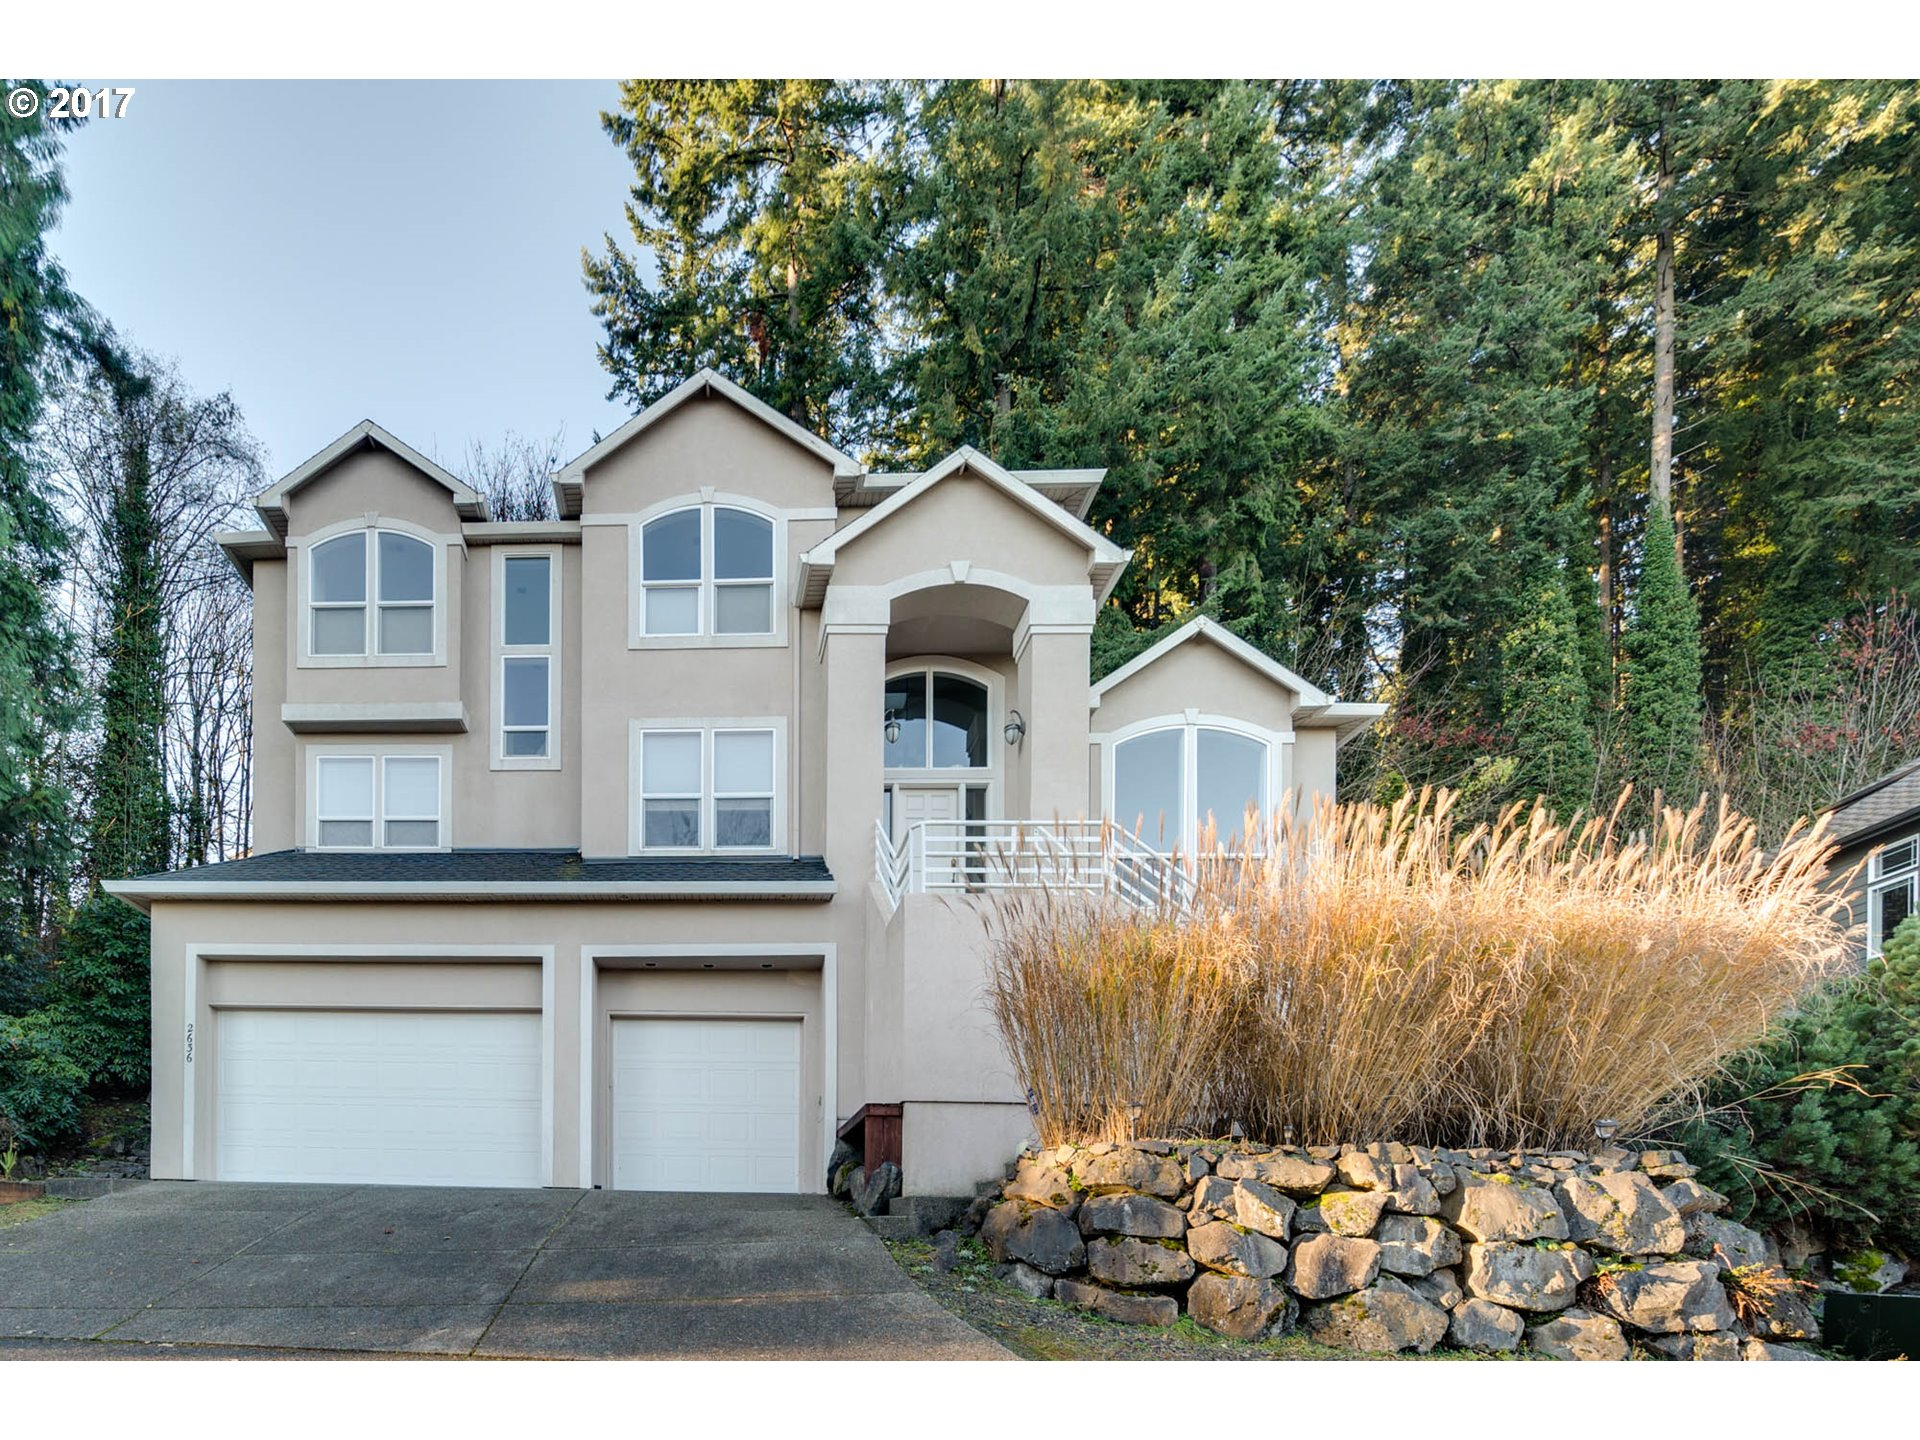 2636 PIMLICO (private dr) DR, West Linn, OR 97068